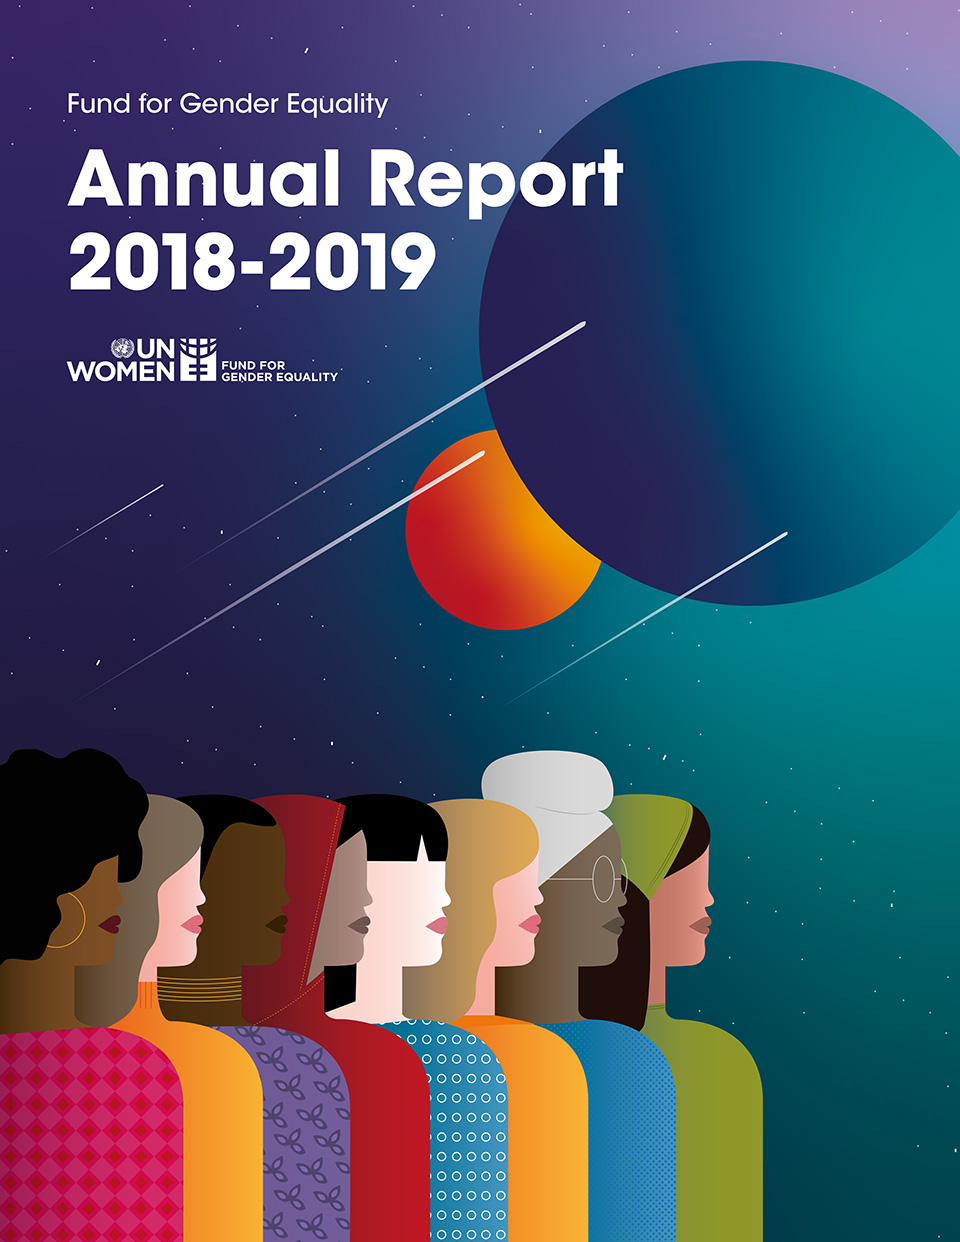 Fund for Gender Equality annual report 2018-2019